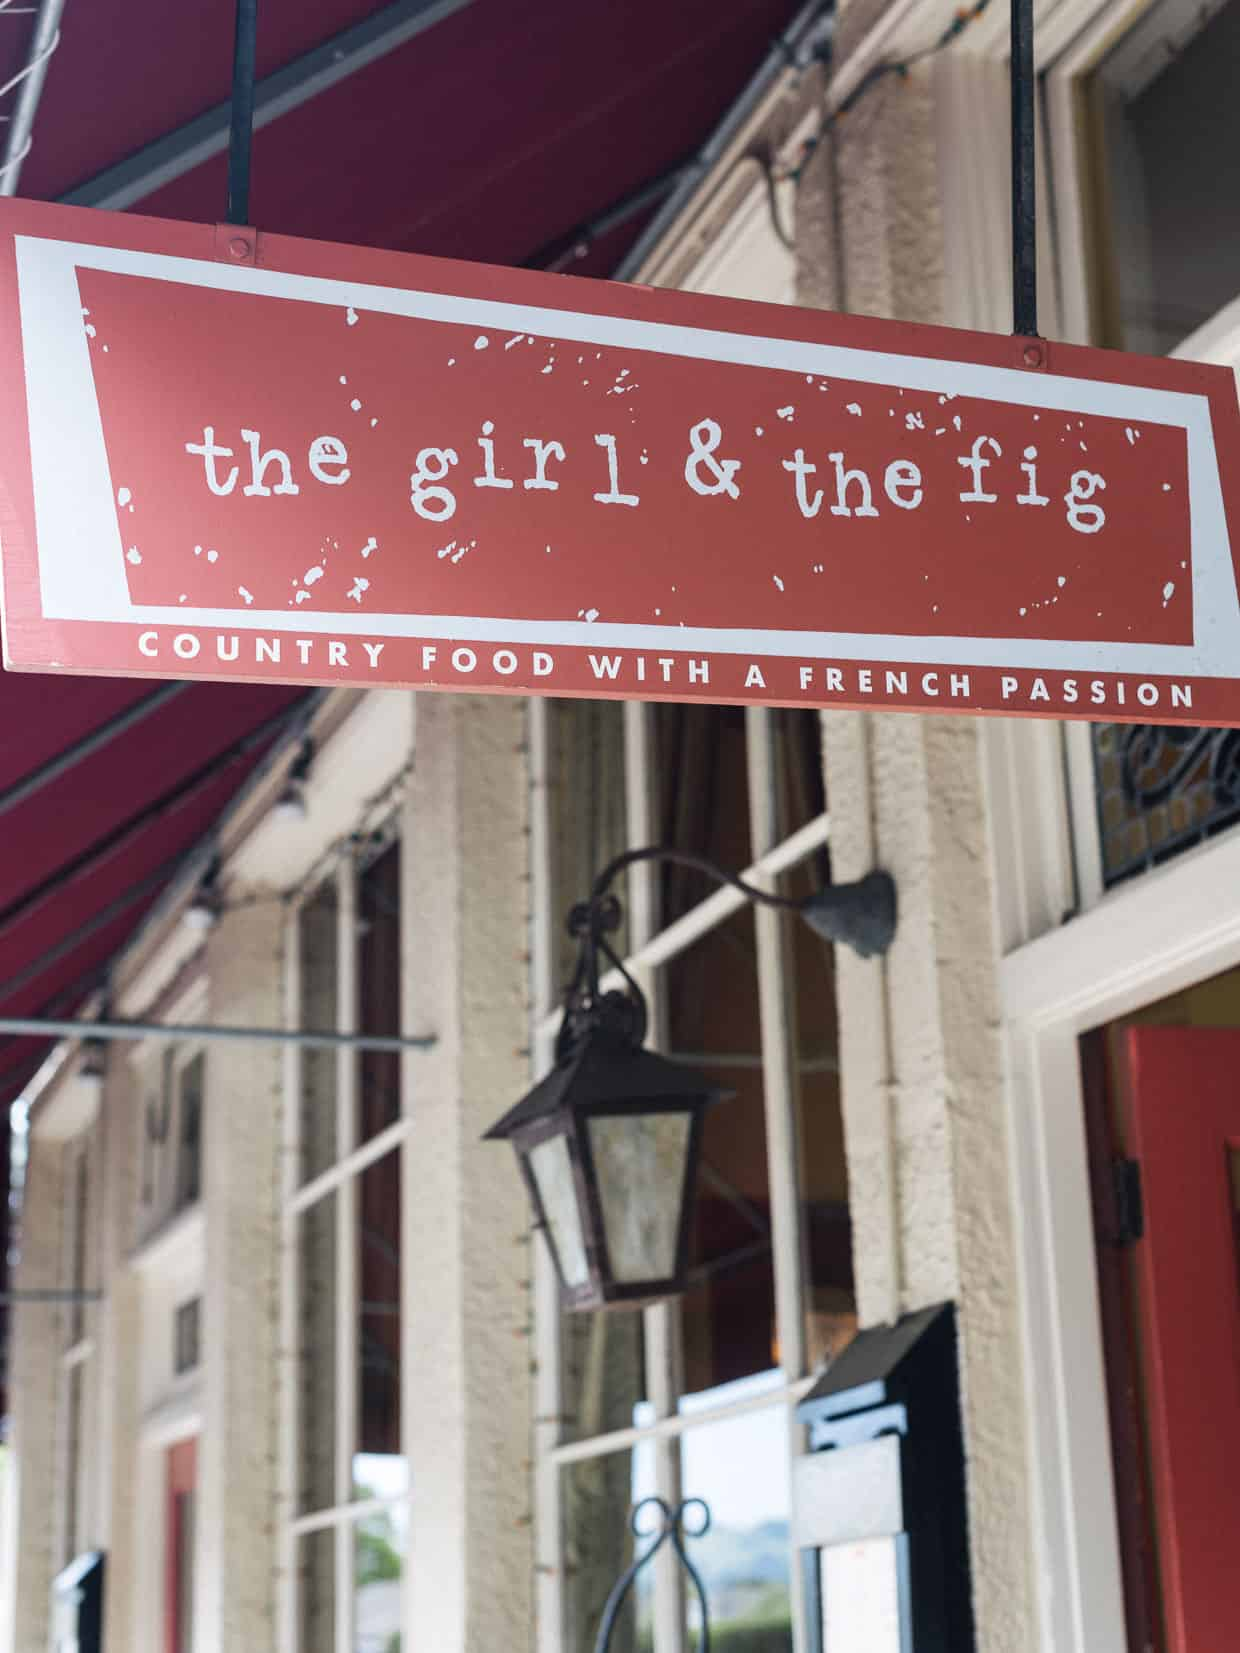 Outdoor signage at The Girl & The Fig.